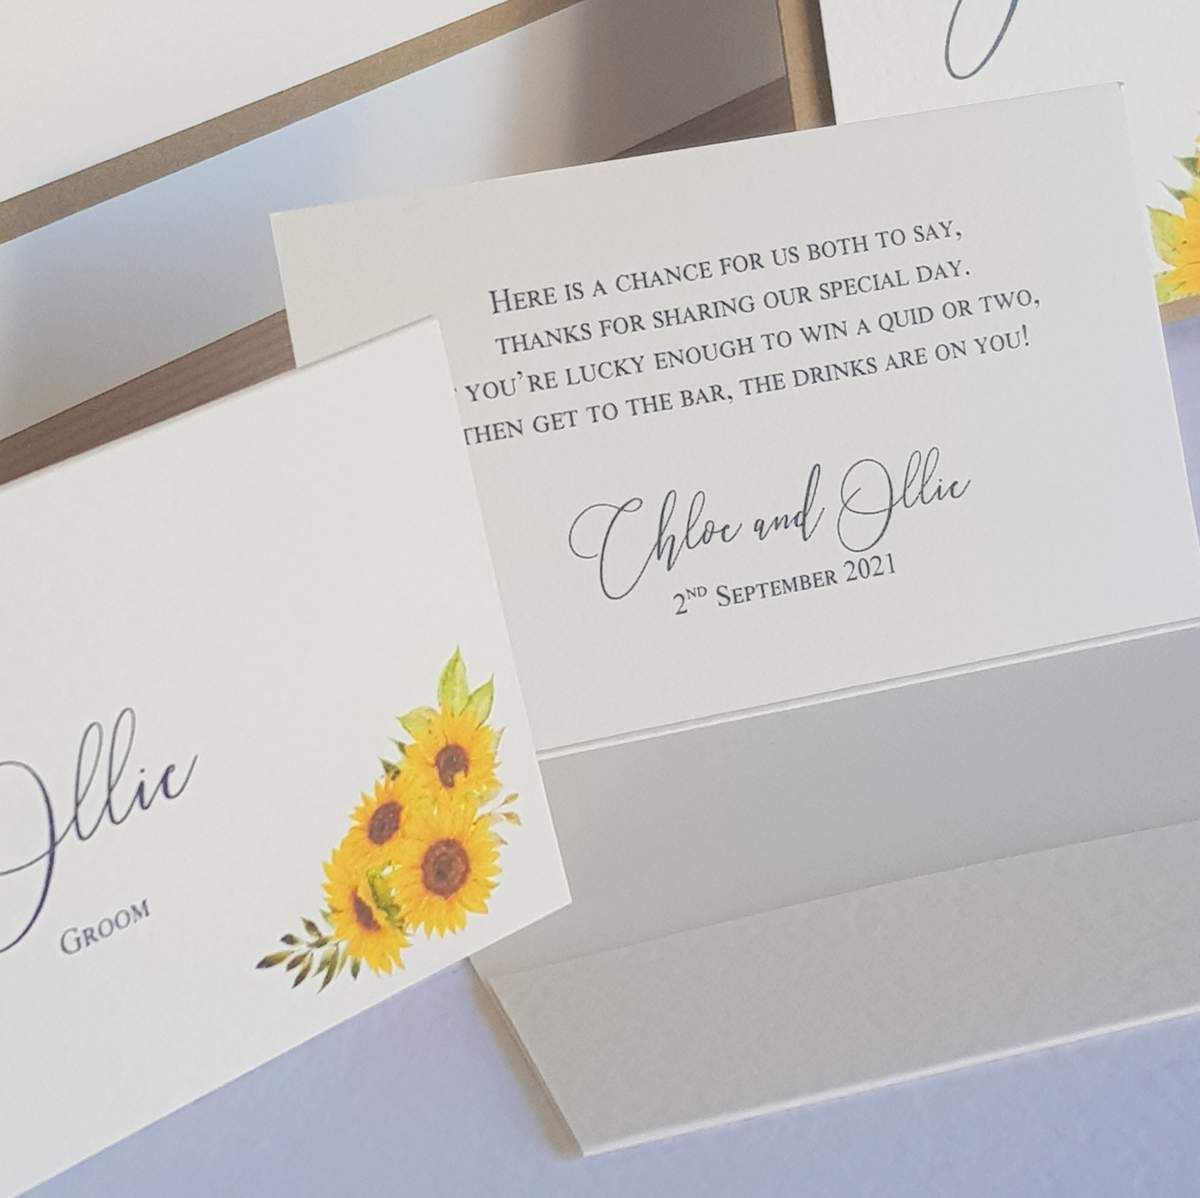 wedding lotto wallet place cards, a favour and place name setting all in one as a way to get closer to zero waste wedding stationery